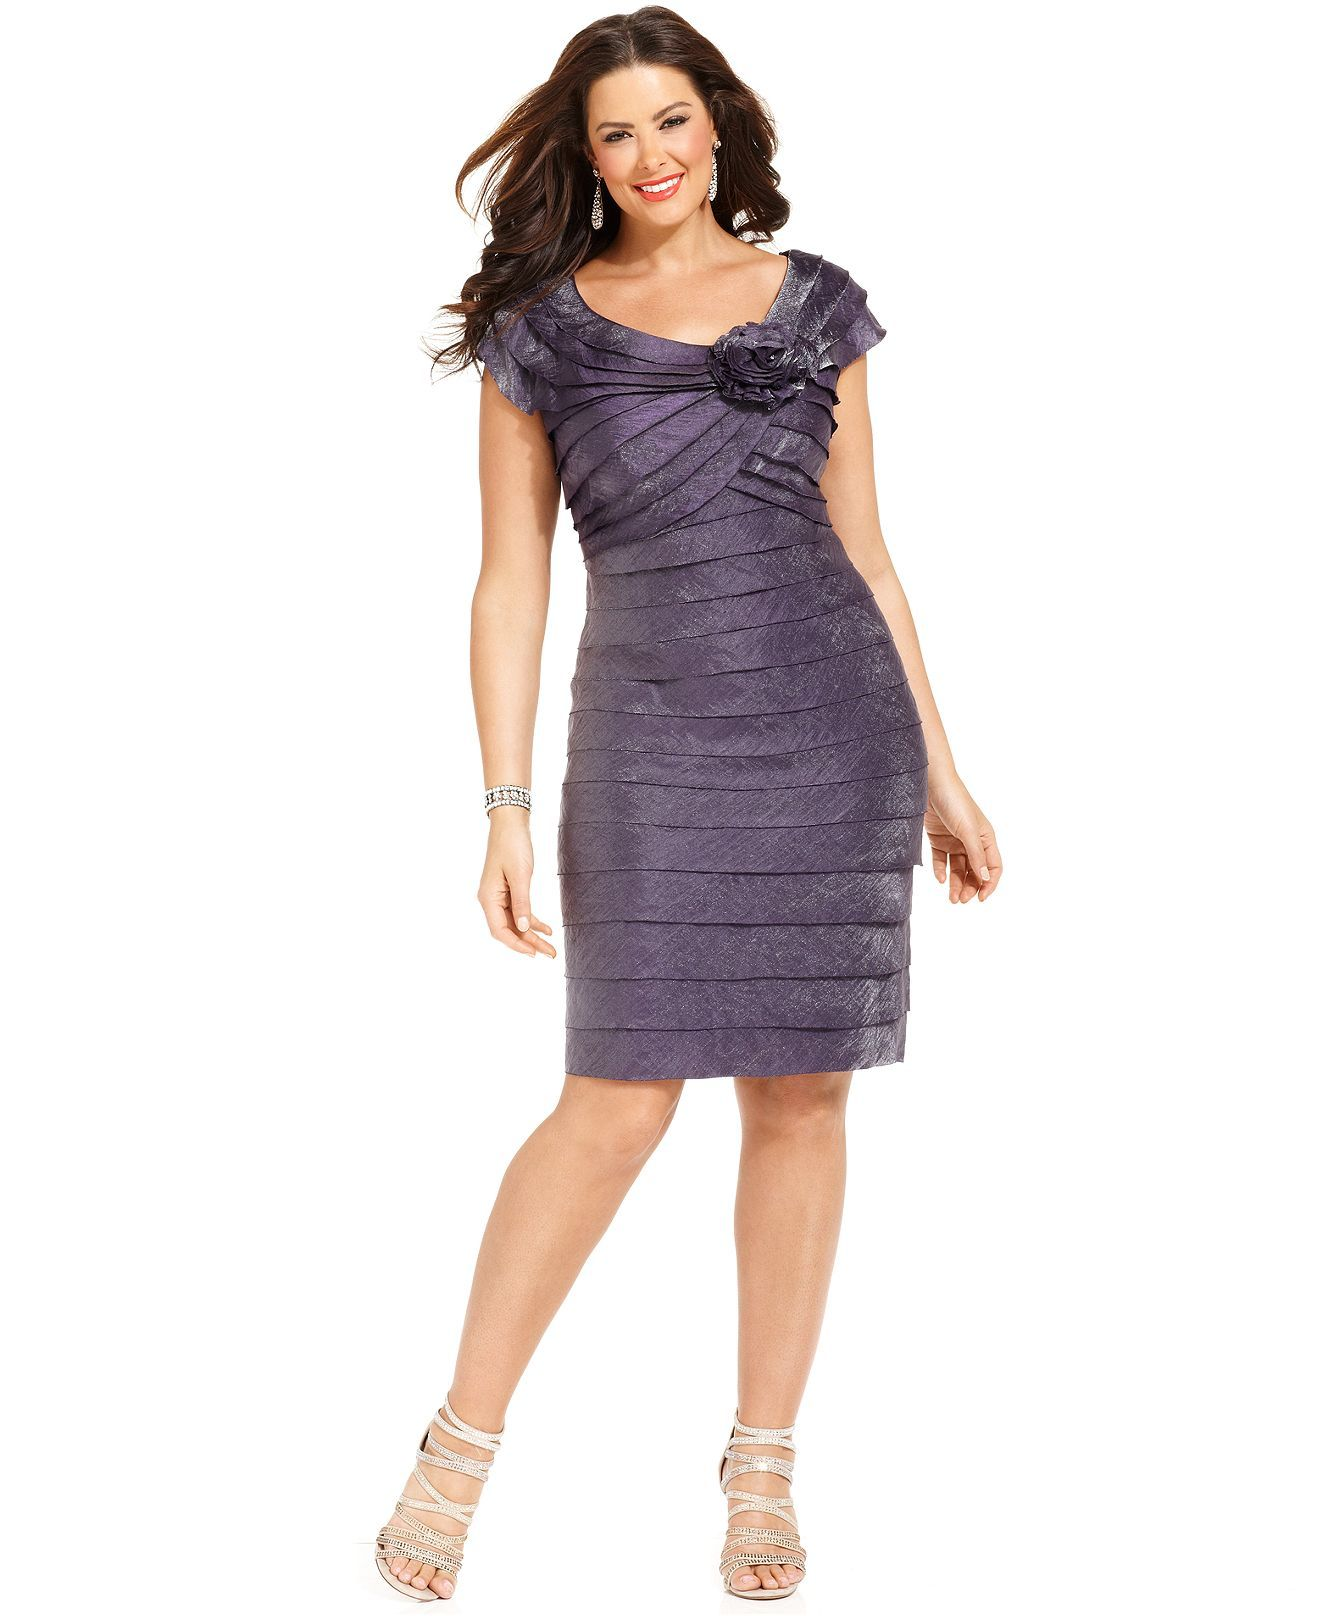 london times plus size dress, rosette cocktail dress - plus size